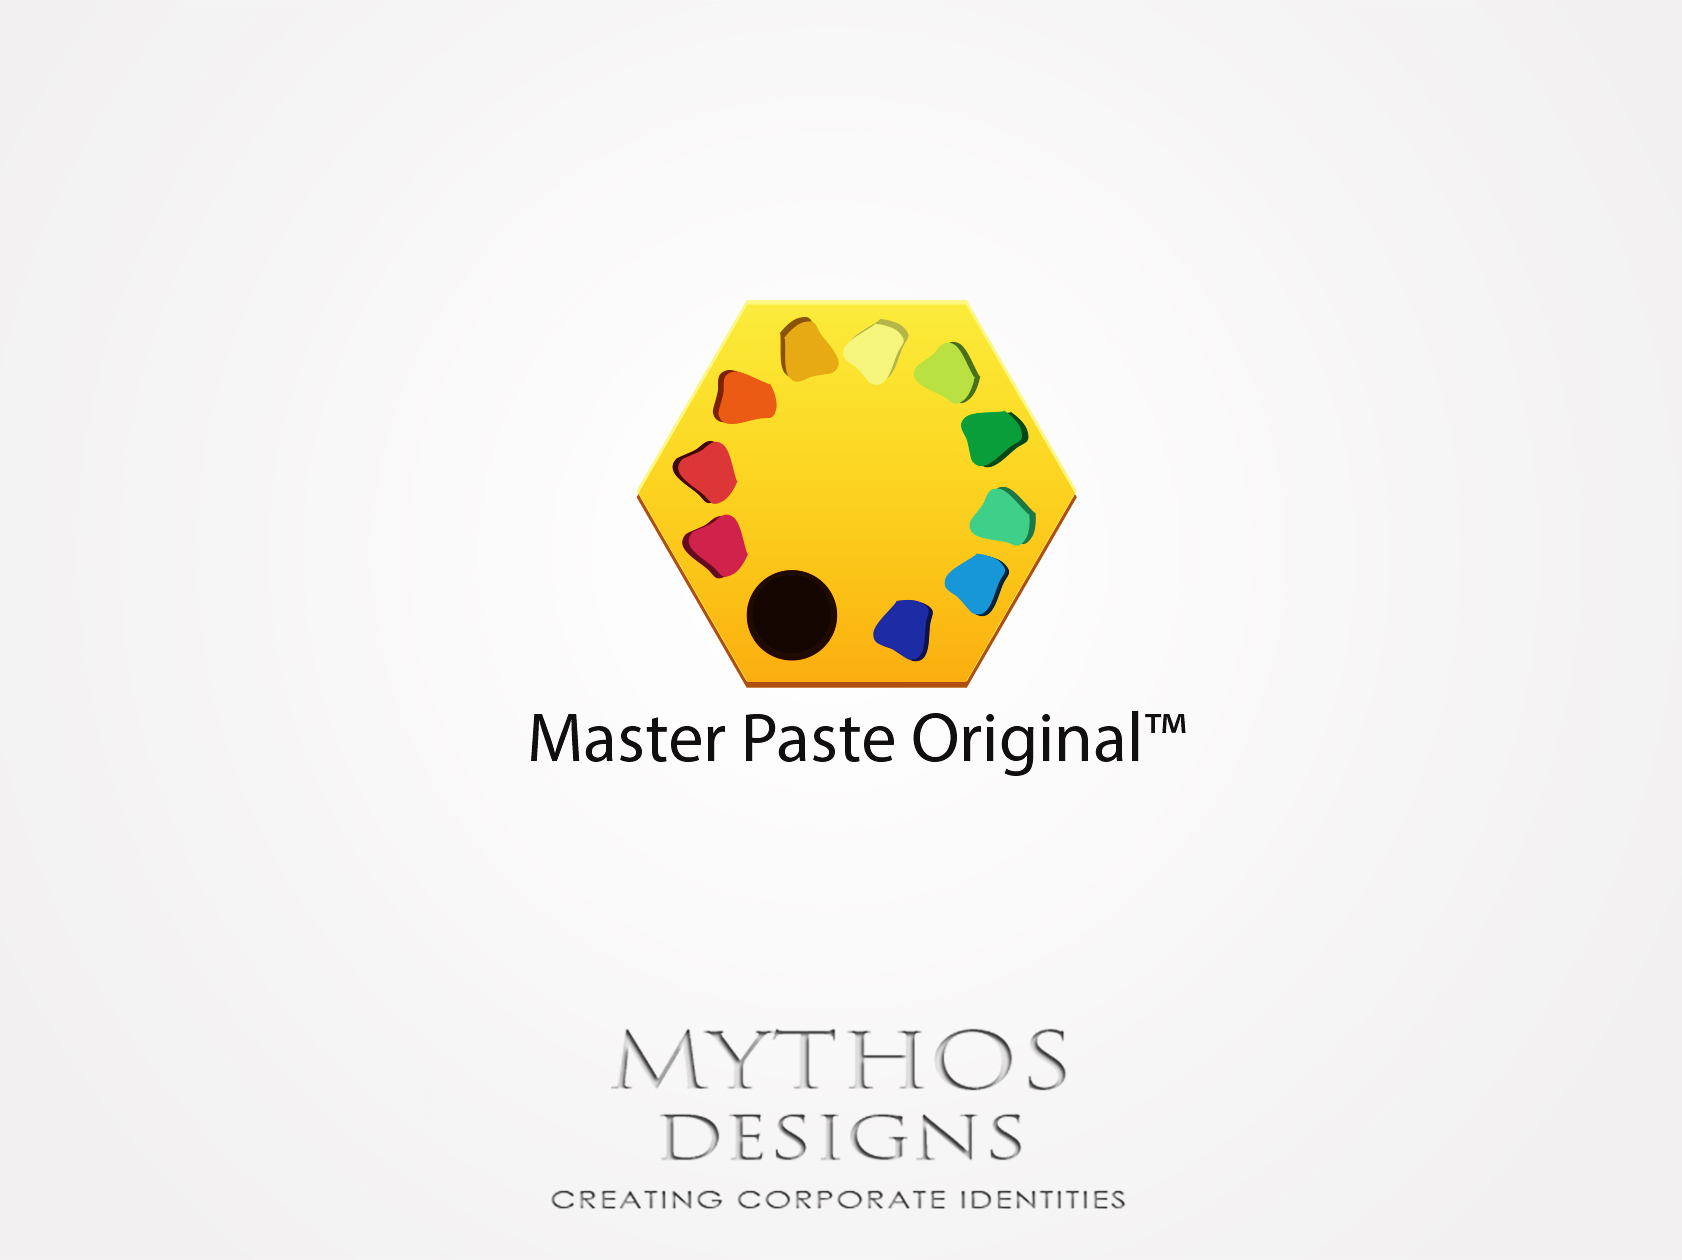 Logo Design by Mythos Designs - Entry No. 5 in the Logo Design Contest Unique Logo Design Wanted for Master Paste Original™.